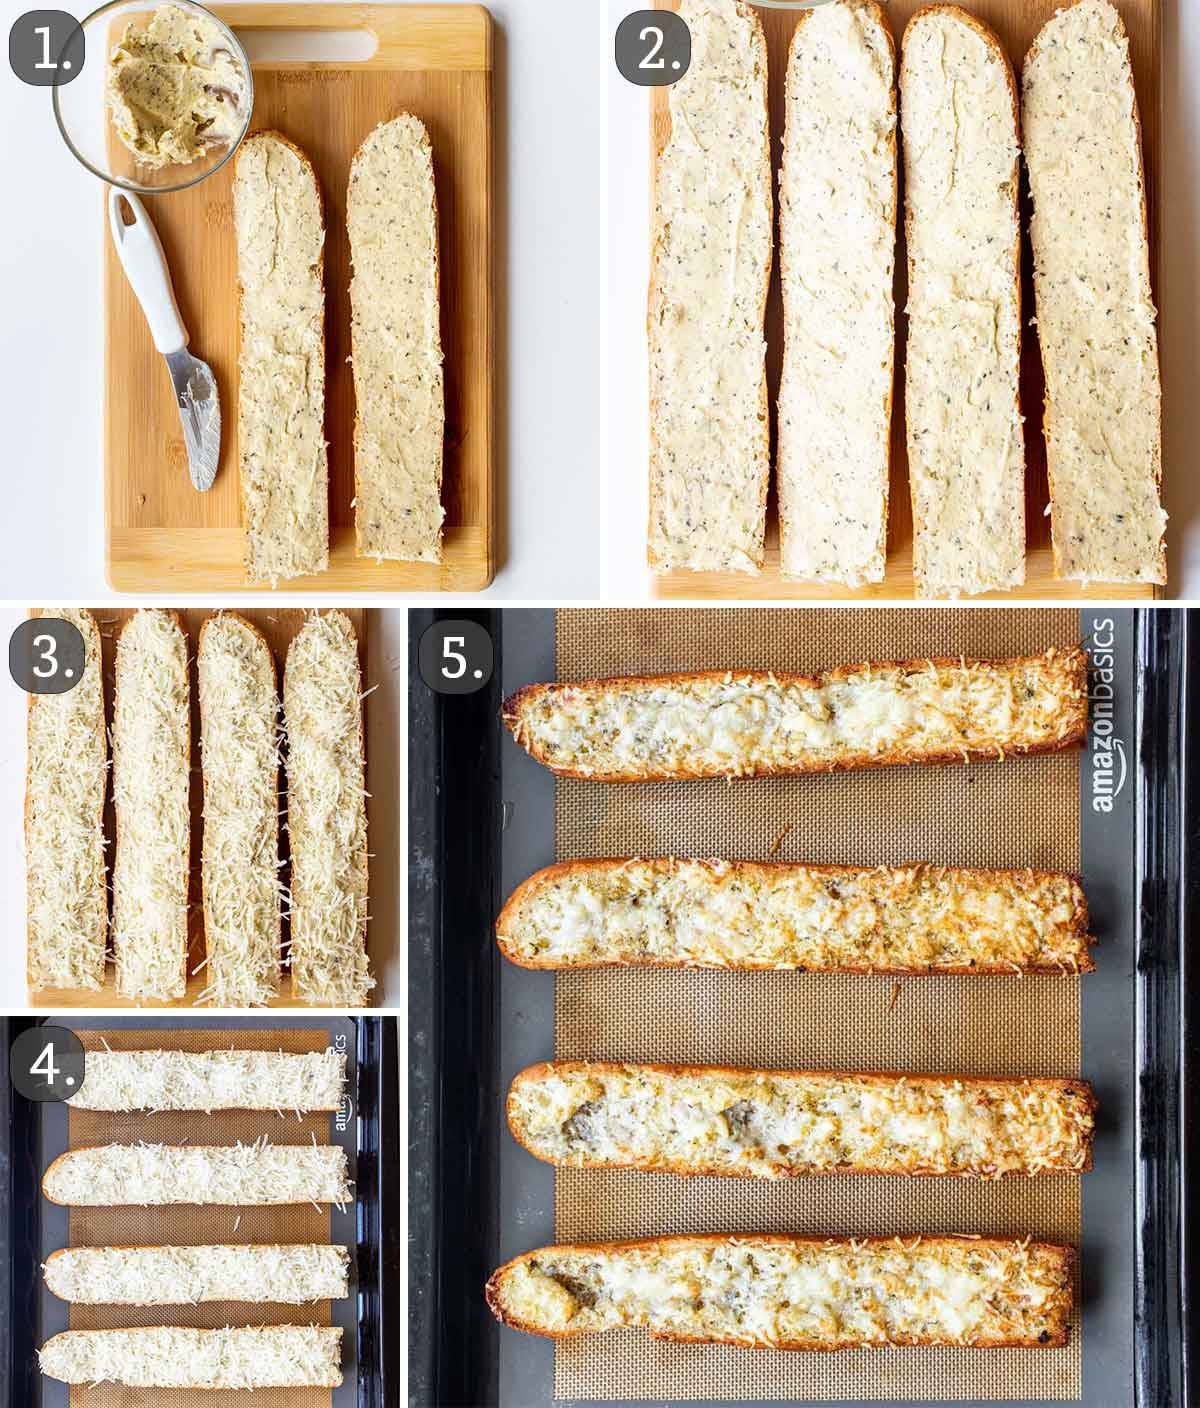 detailed process shots showing how to make garlic bread.